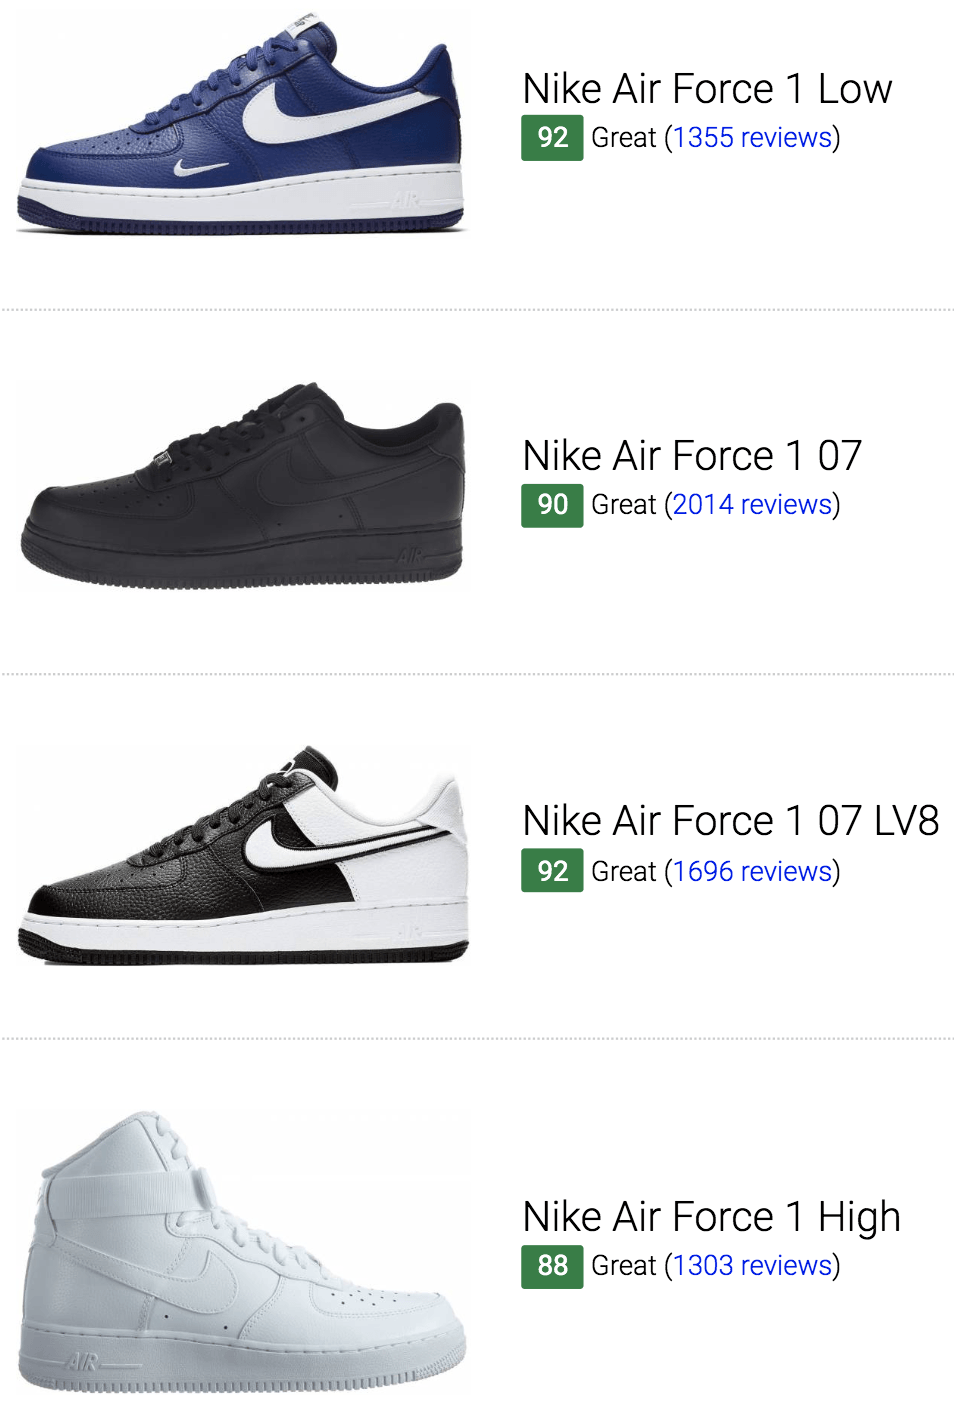 huge selection of c7b47 02087 Best Nike Air Force 1 Sneakers